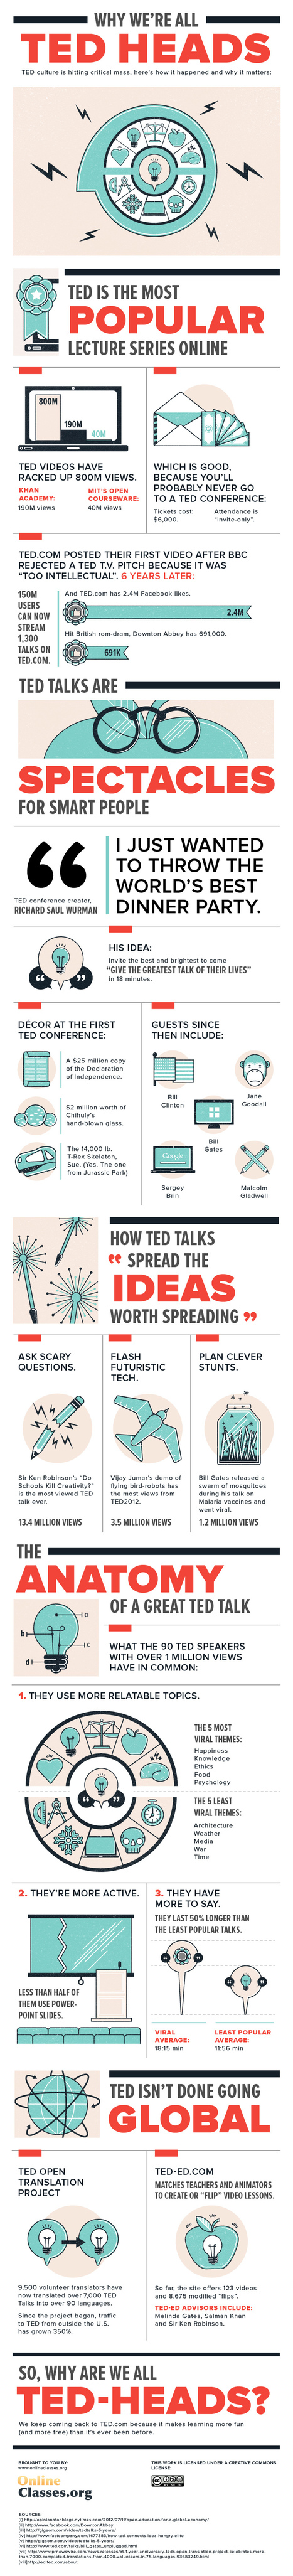 TED: The Greatest Platform Worth Sharing | Education | Scoop.it